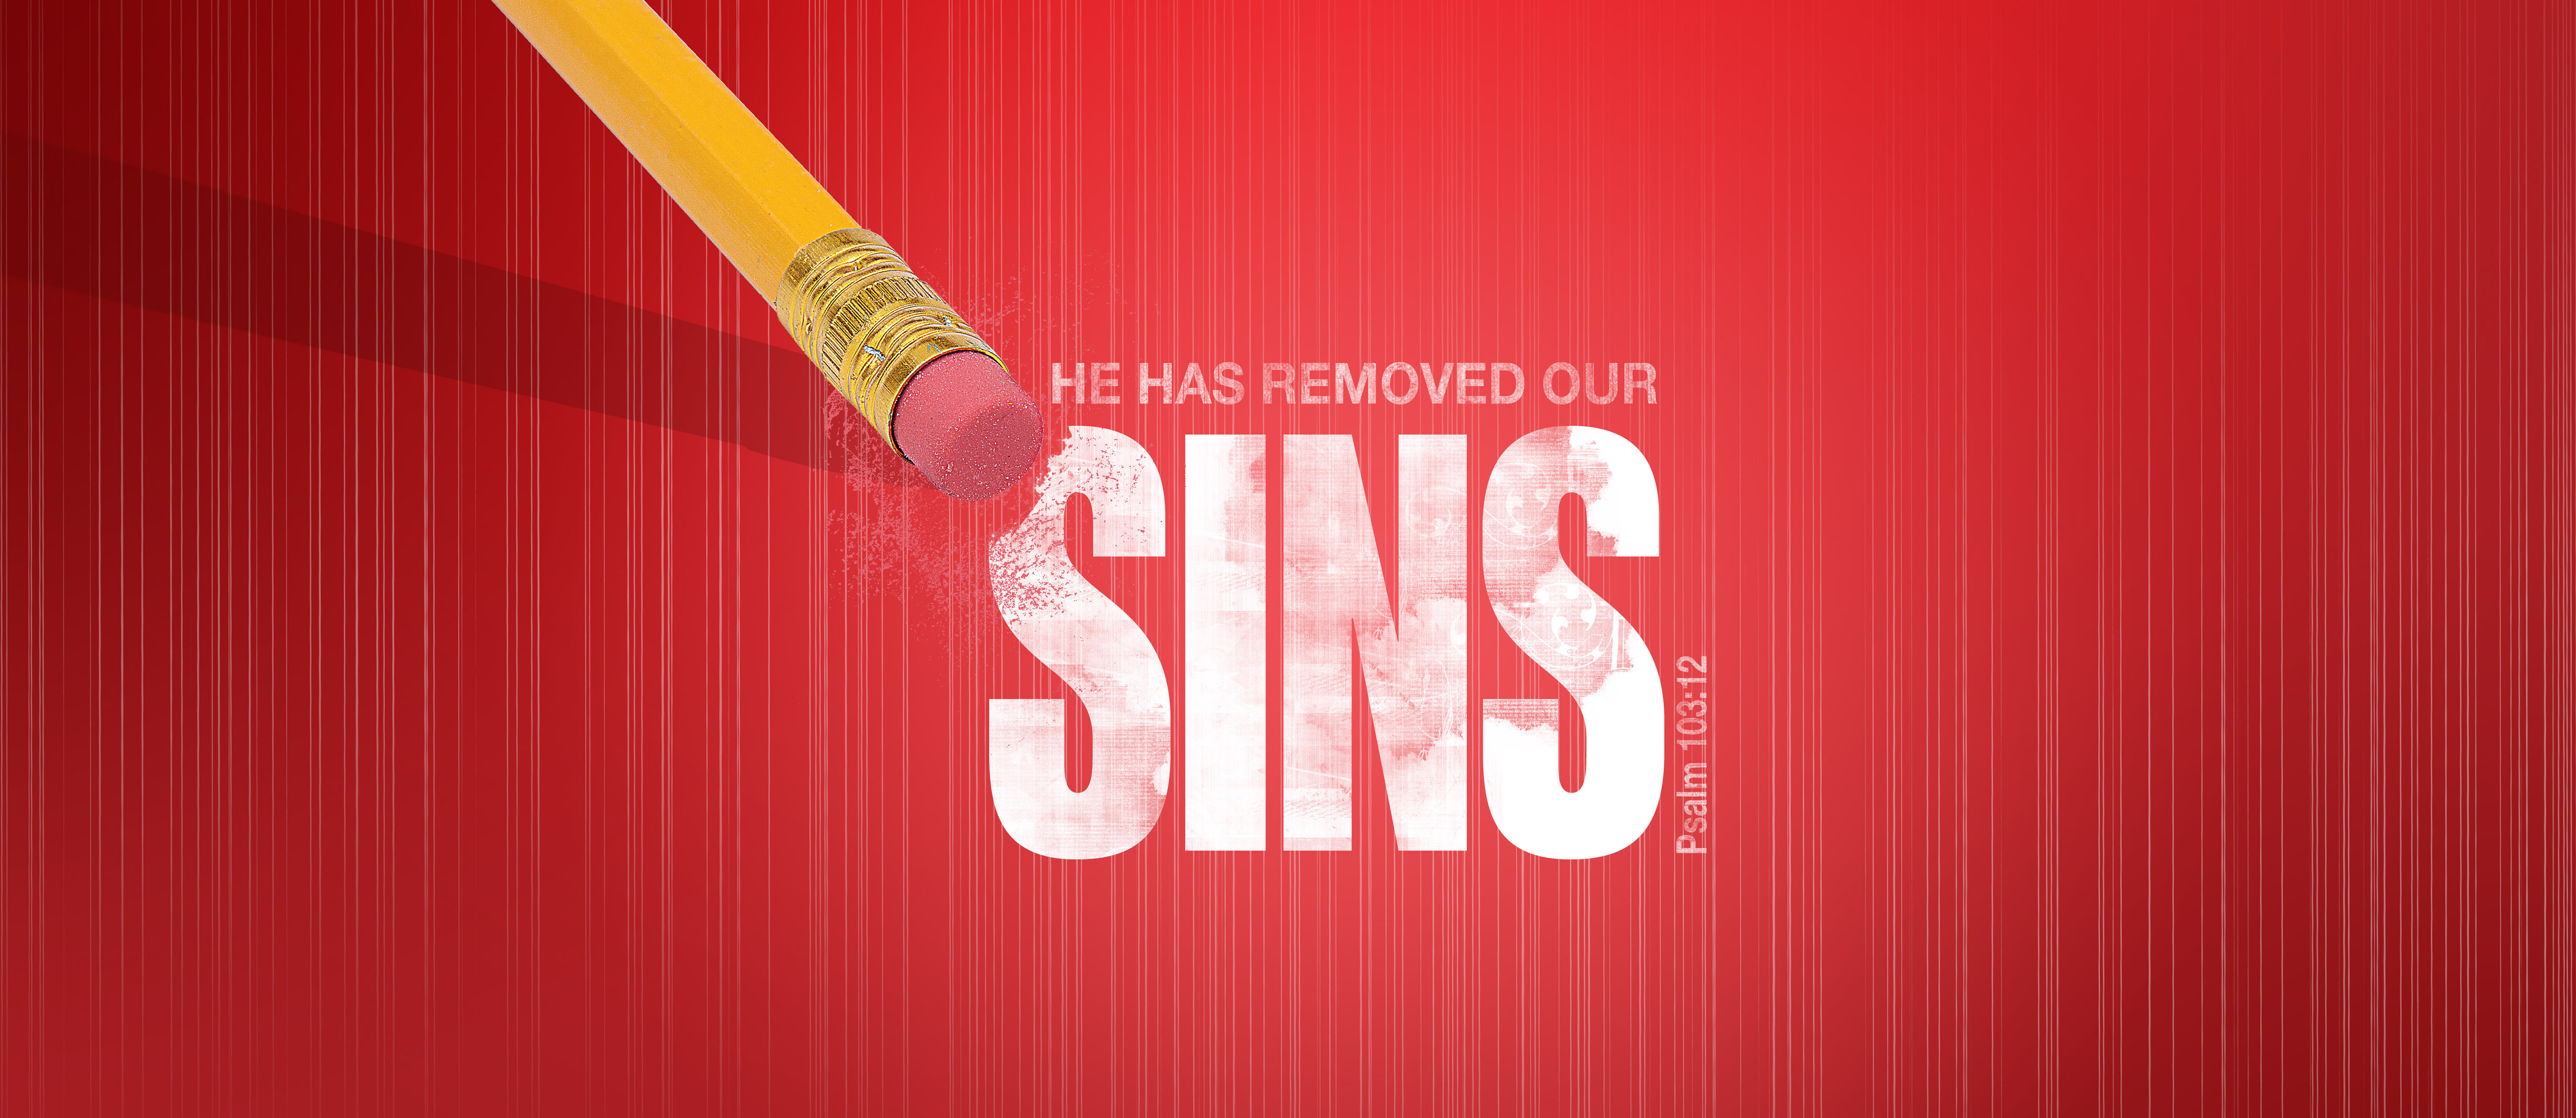 he has removed our sins